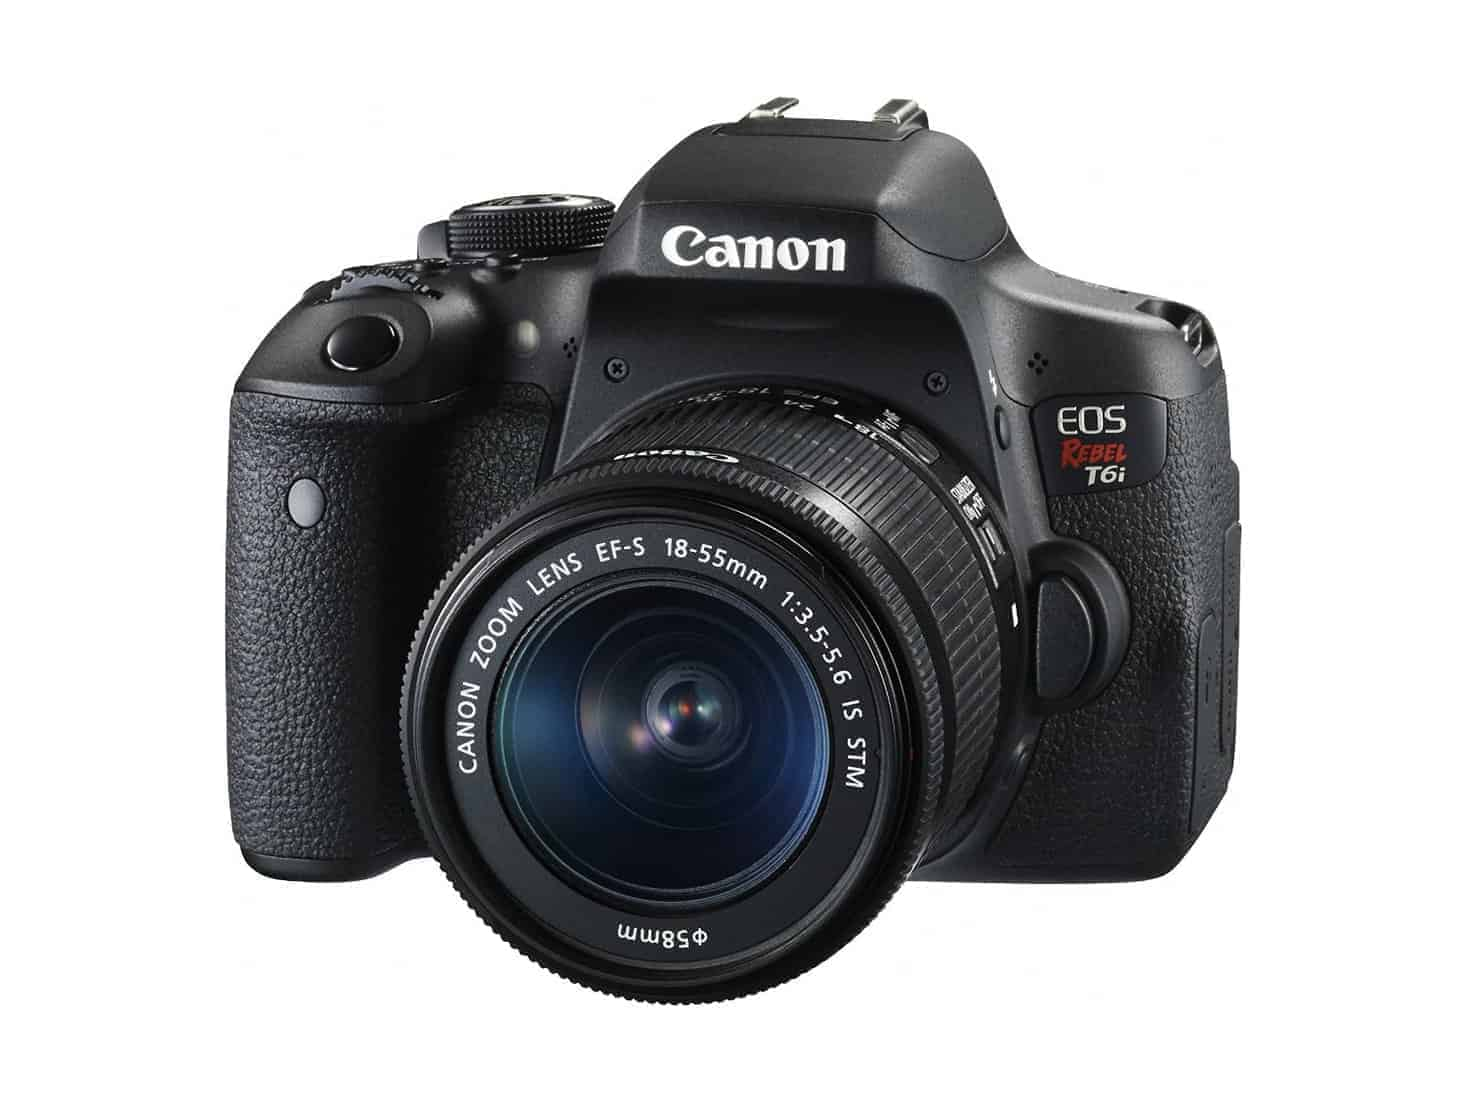 Canon EOS Rebel T6i: Still a great DSLR for shooting video